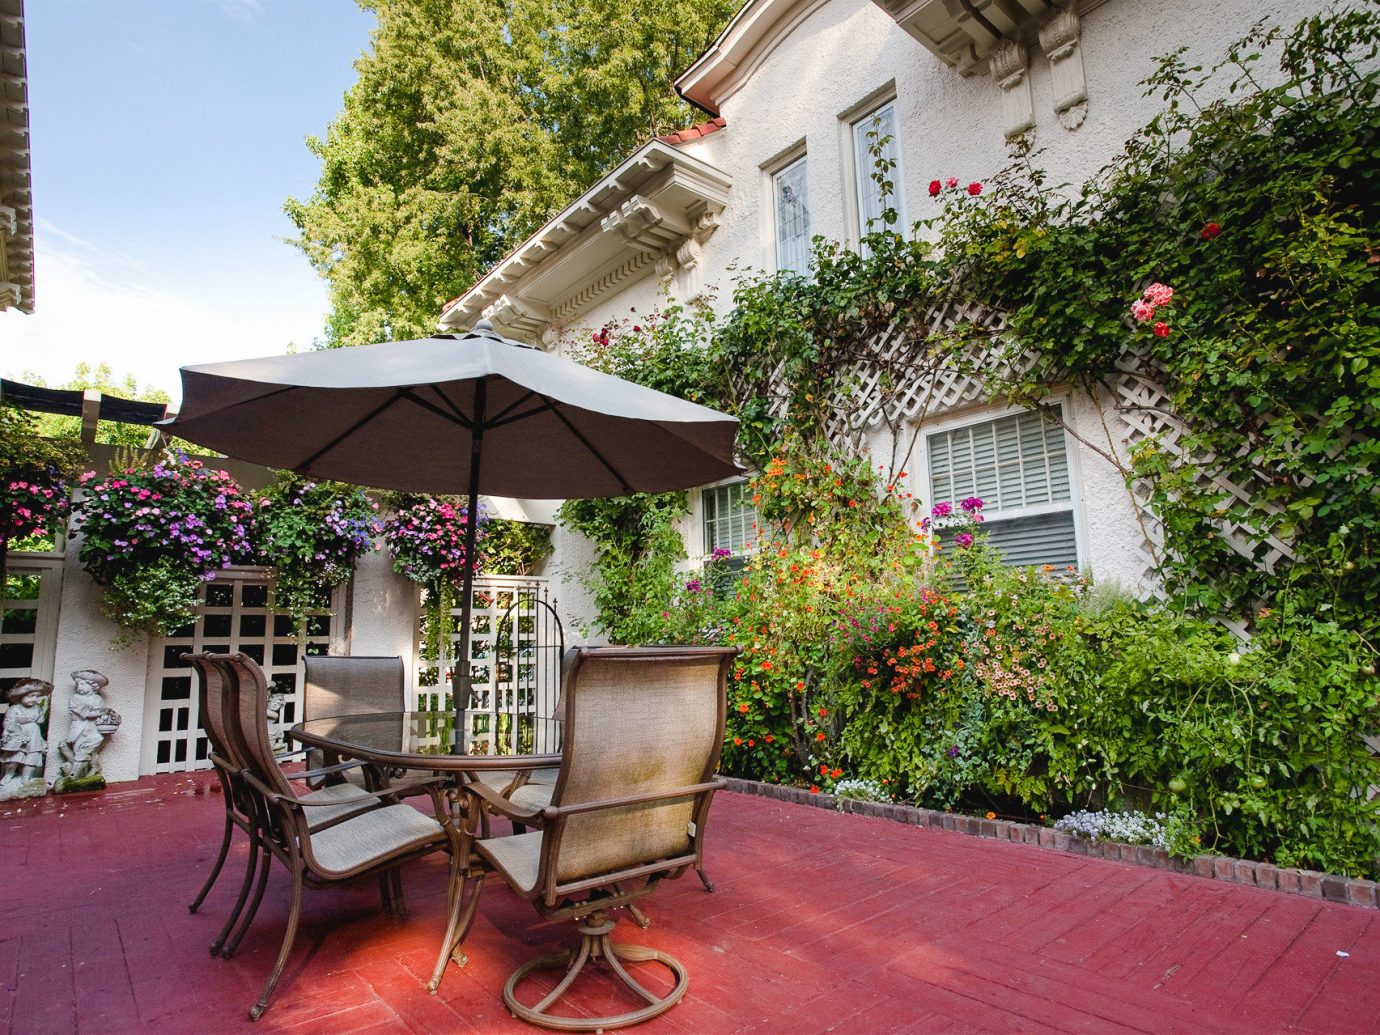 Boutique Hotels Hotels Romantic Getaways Romantic Hotels tree outdoor building property house home Patio real estate Courtyard backyard outdoor structure Balcony plant estate Garden yard cottage apartment stone